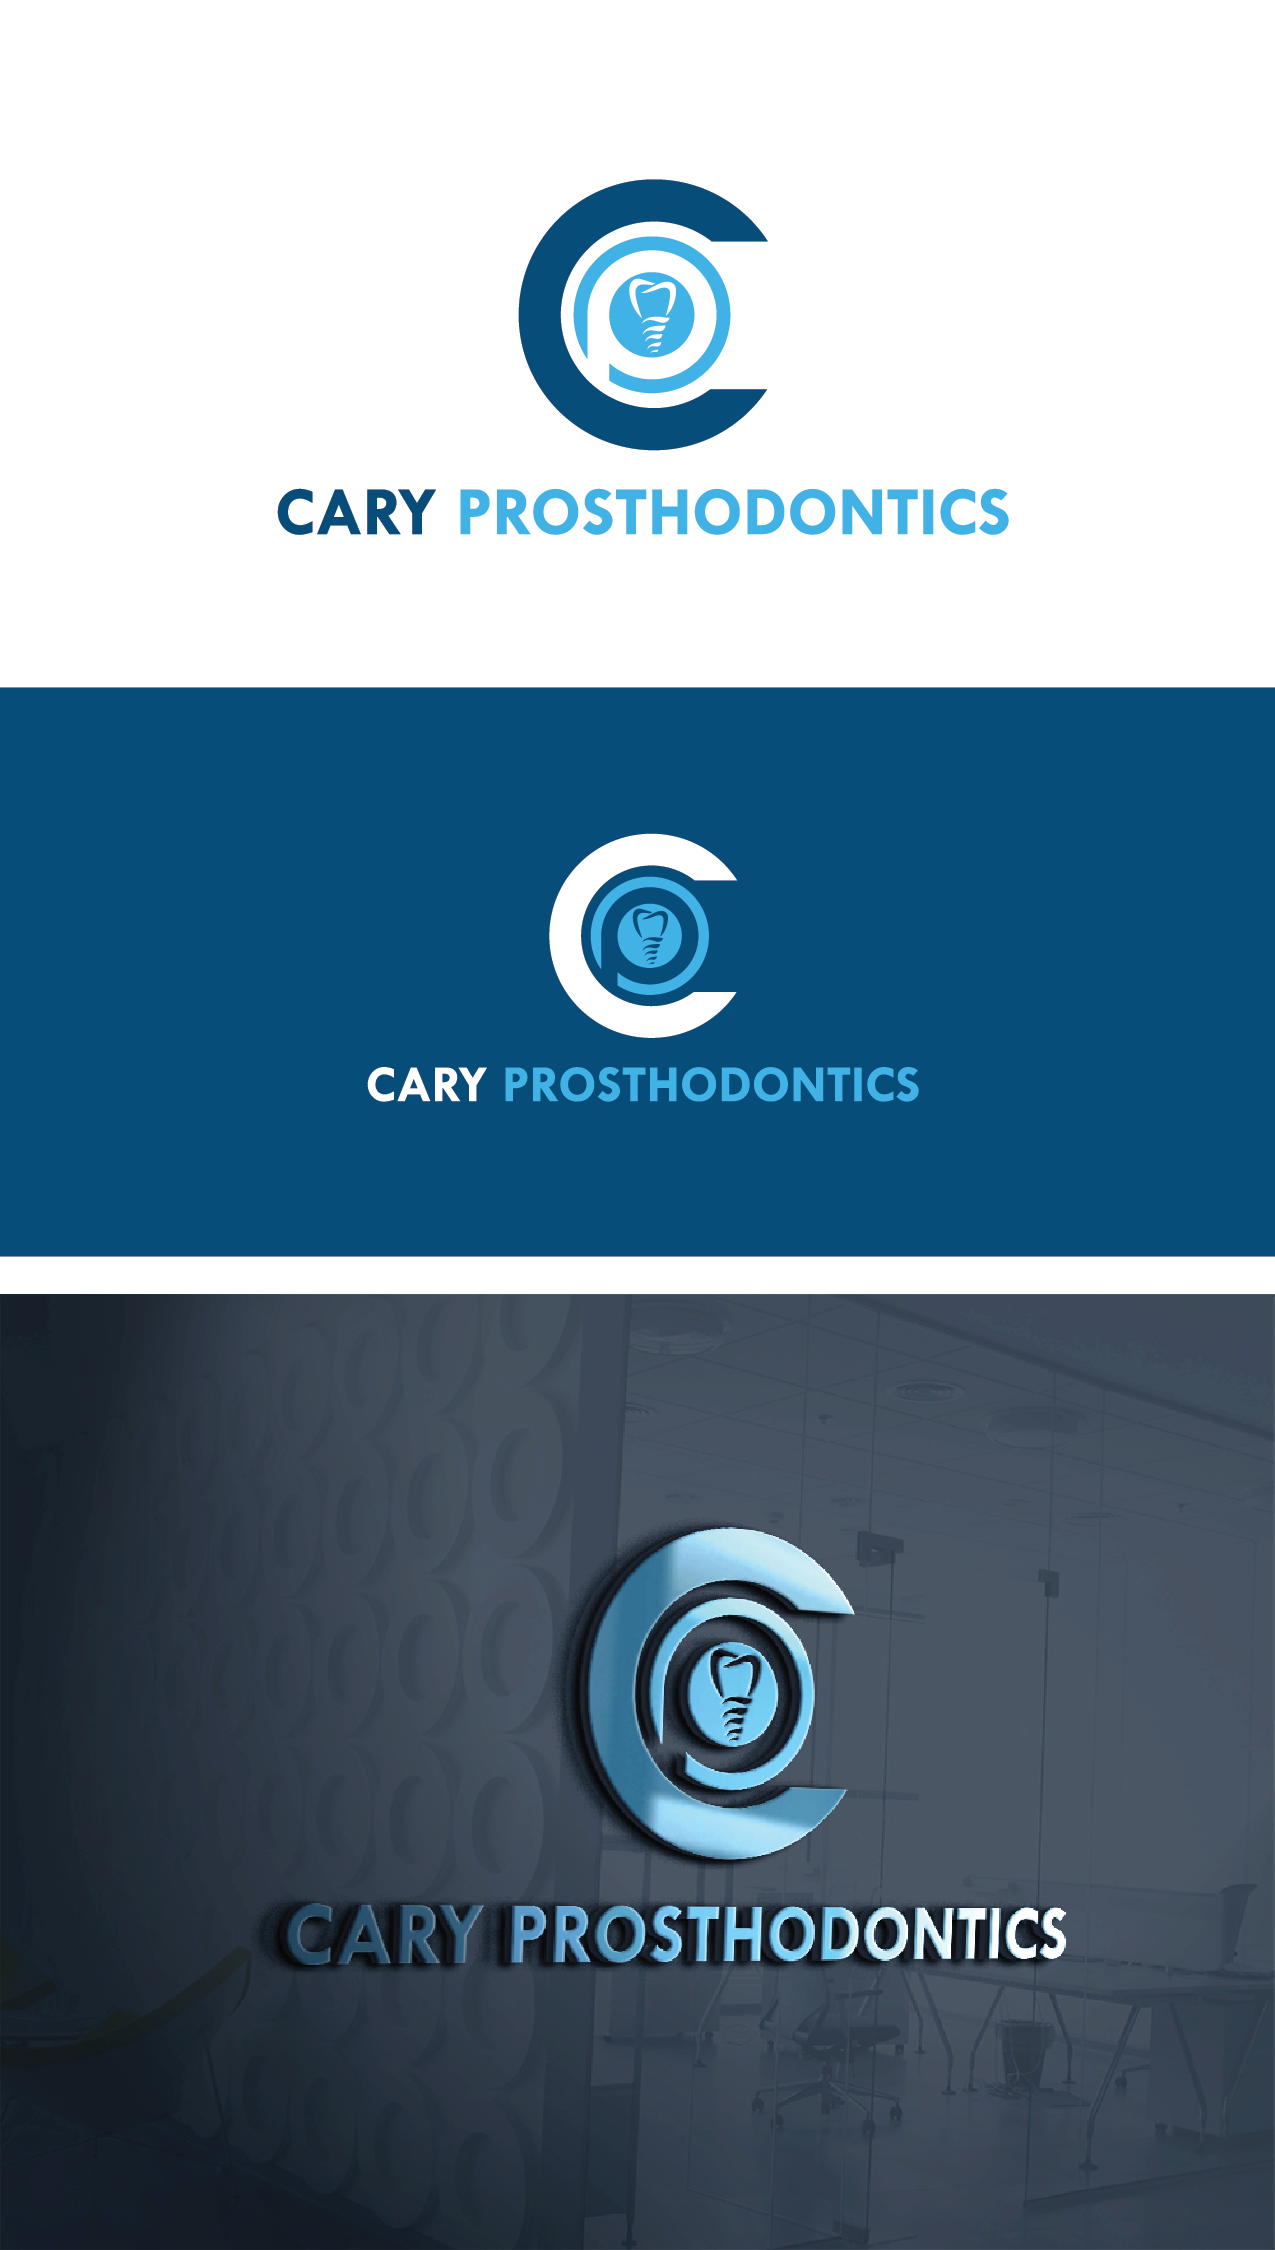 Logo Design by Private User - Entry No. 58 in the Logo Design Contest Cary Prosthodontics Logo Design.